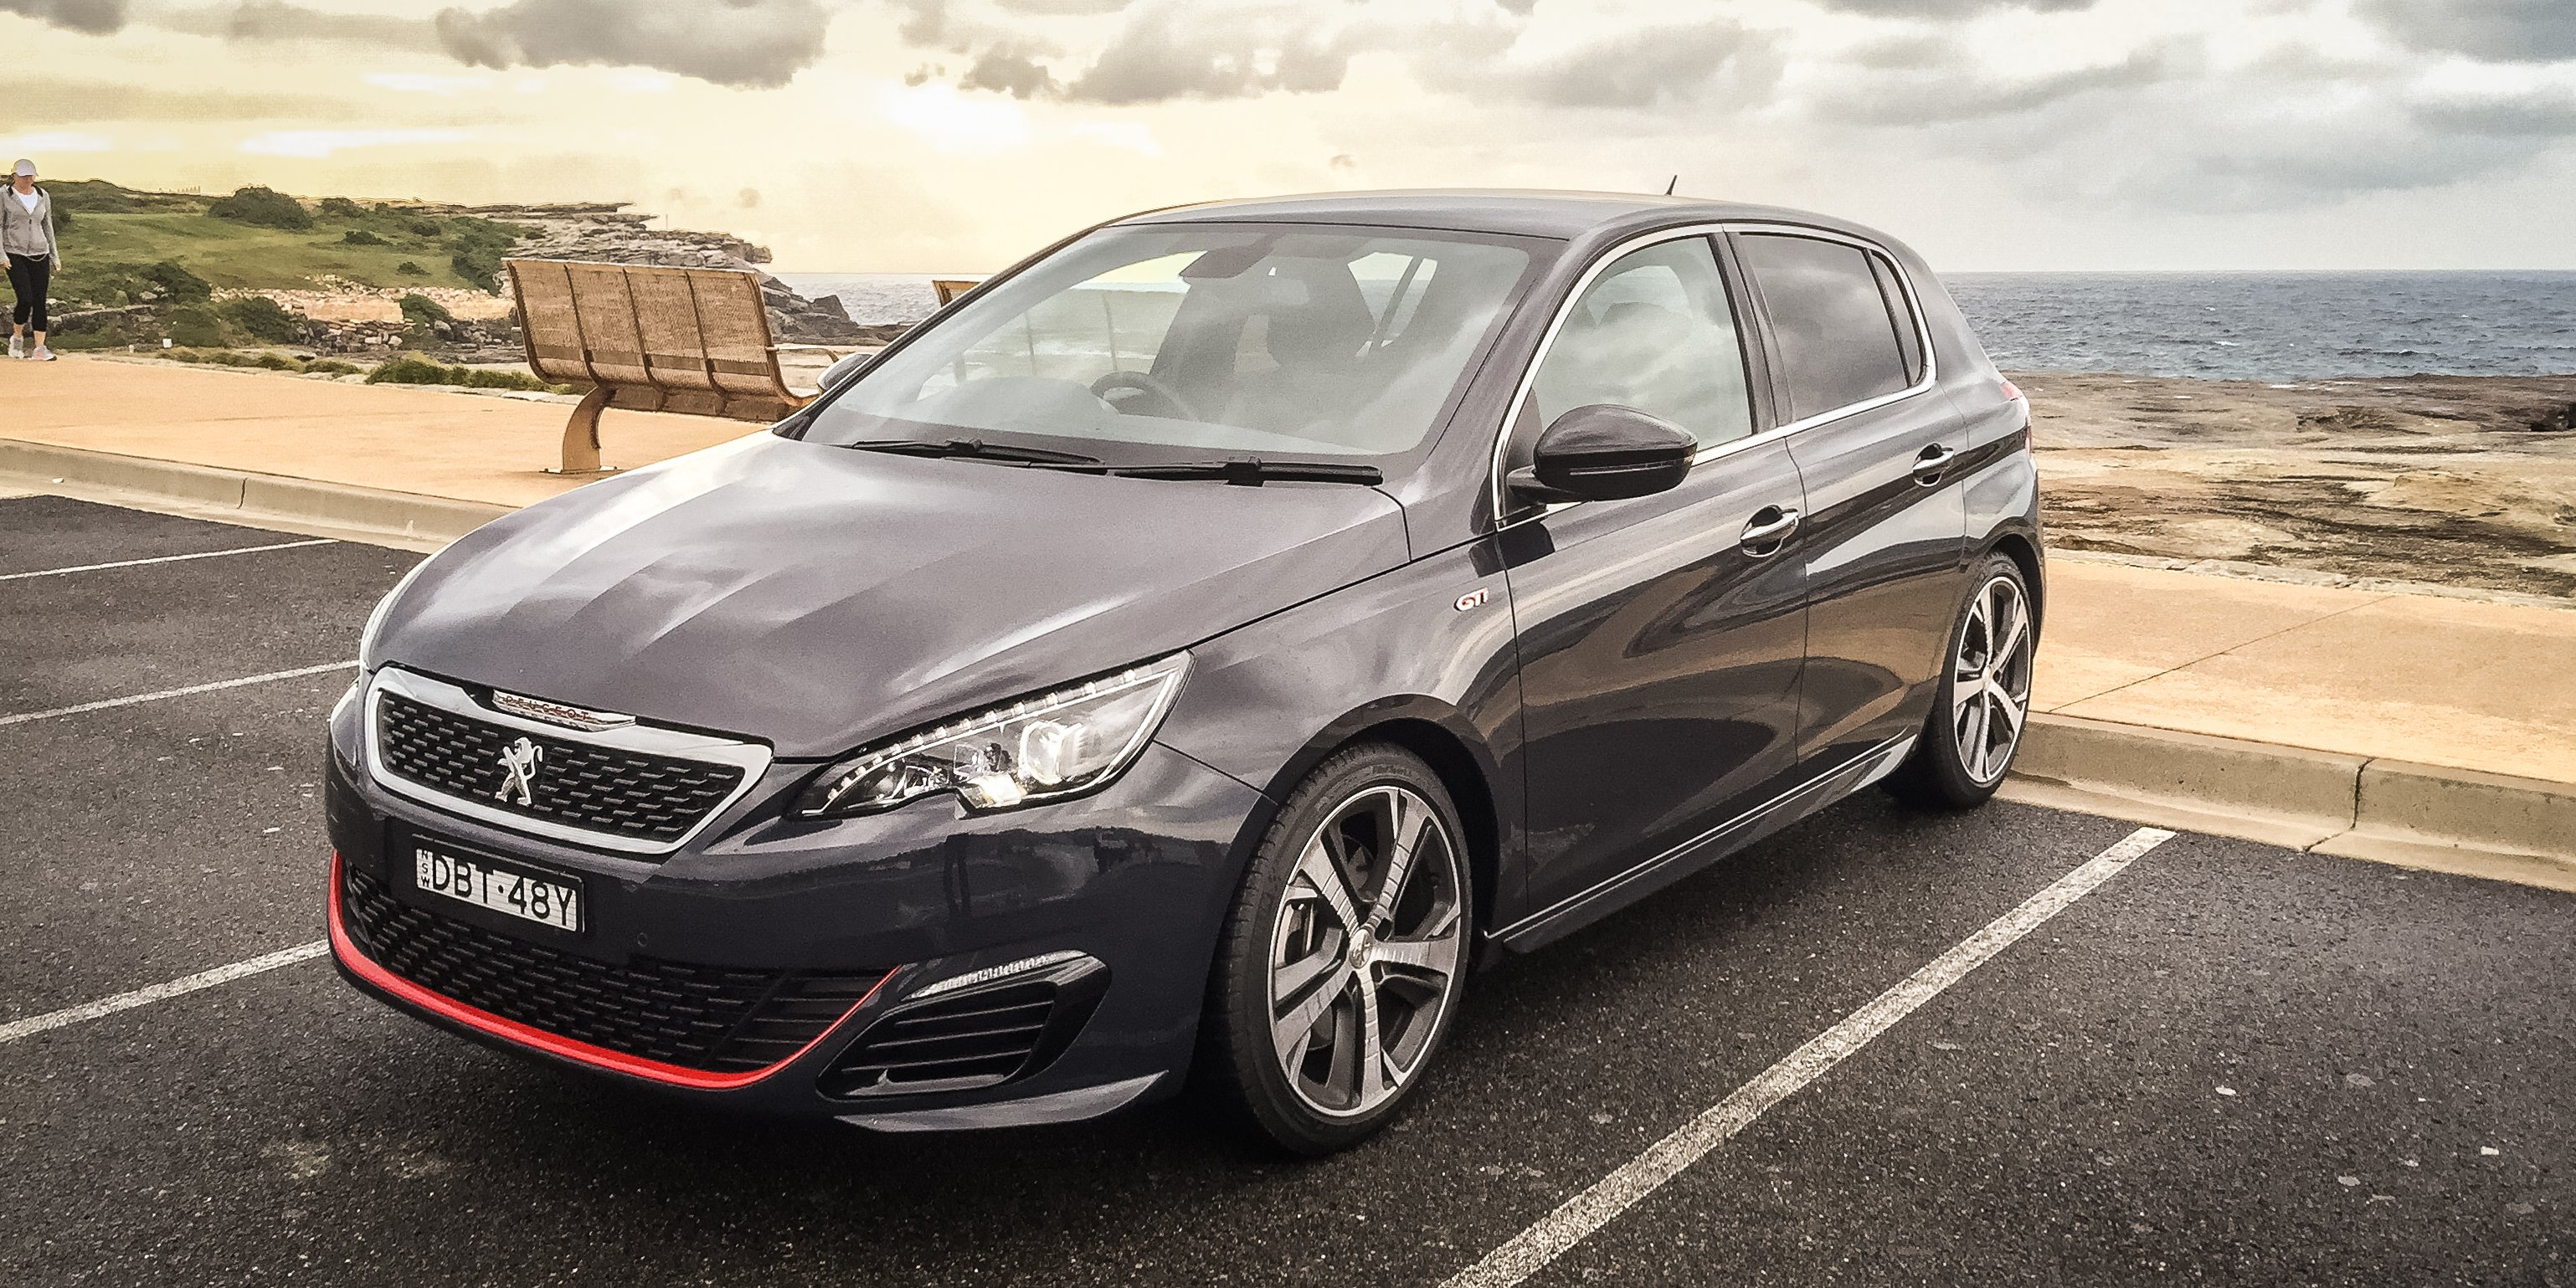 2016 peugeot 308 gti 250 week with review photos caradvice. Black Bedroom Furniture Sets. Home Design Ideas